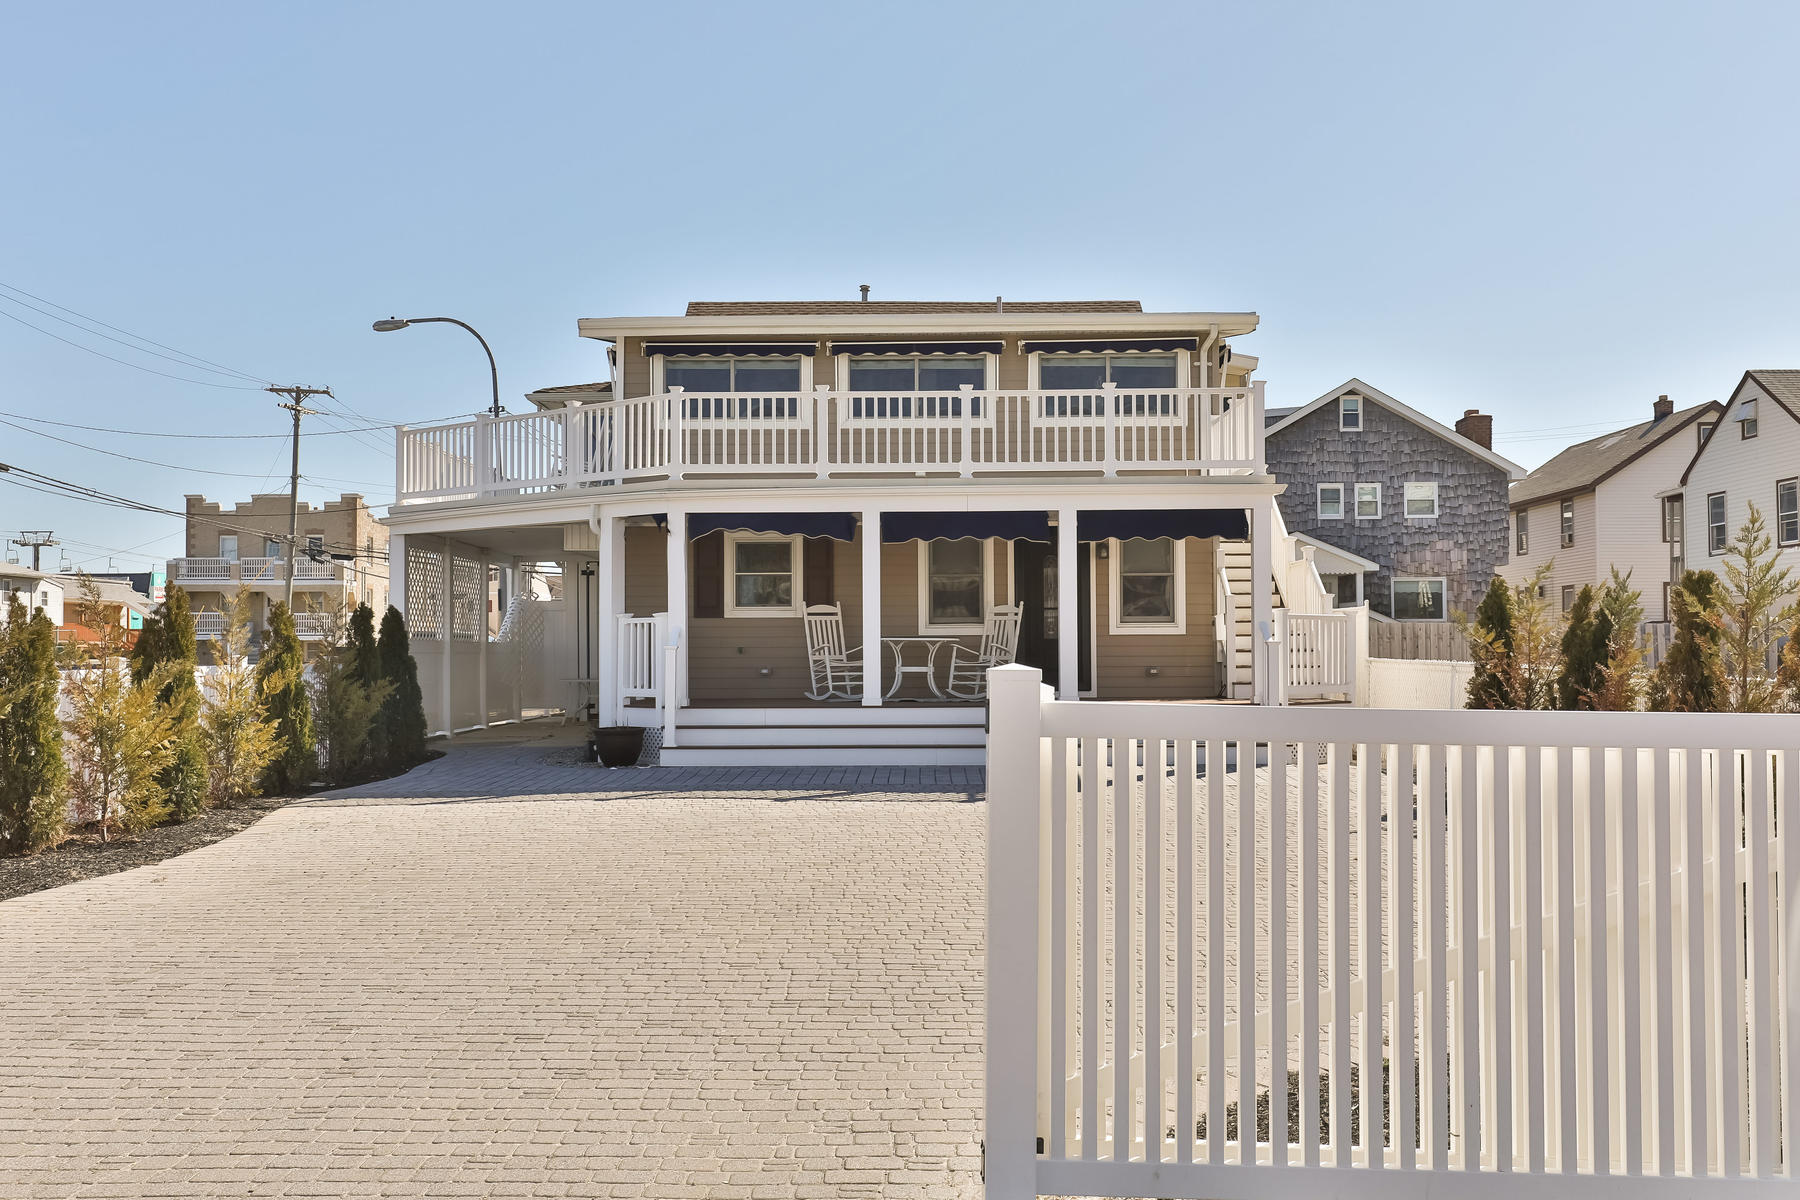 Casa Unifamiliar por un Venta en Panoramic Ocean Views 17 Sampson Avenue Seaside Heights, Nueva Jersey 08751 Estados Unidos